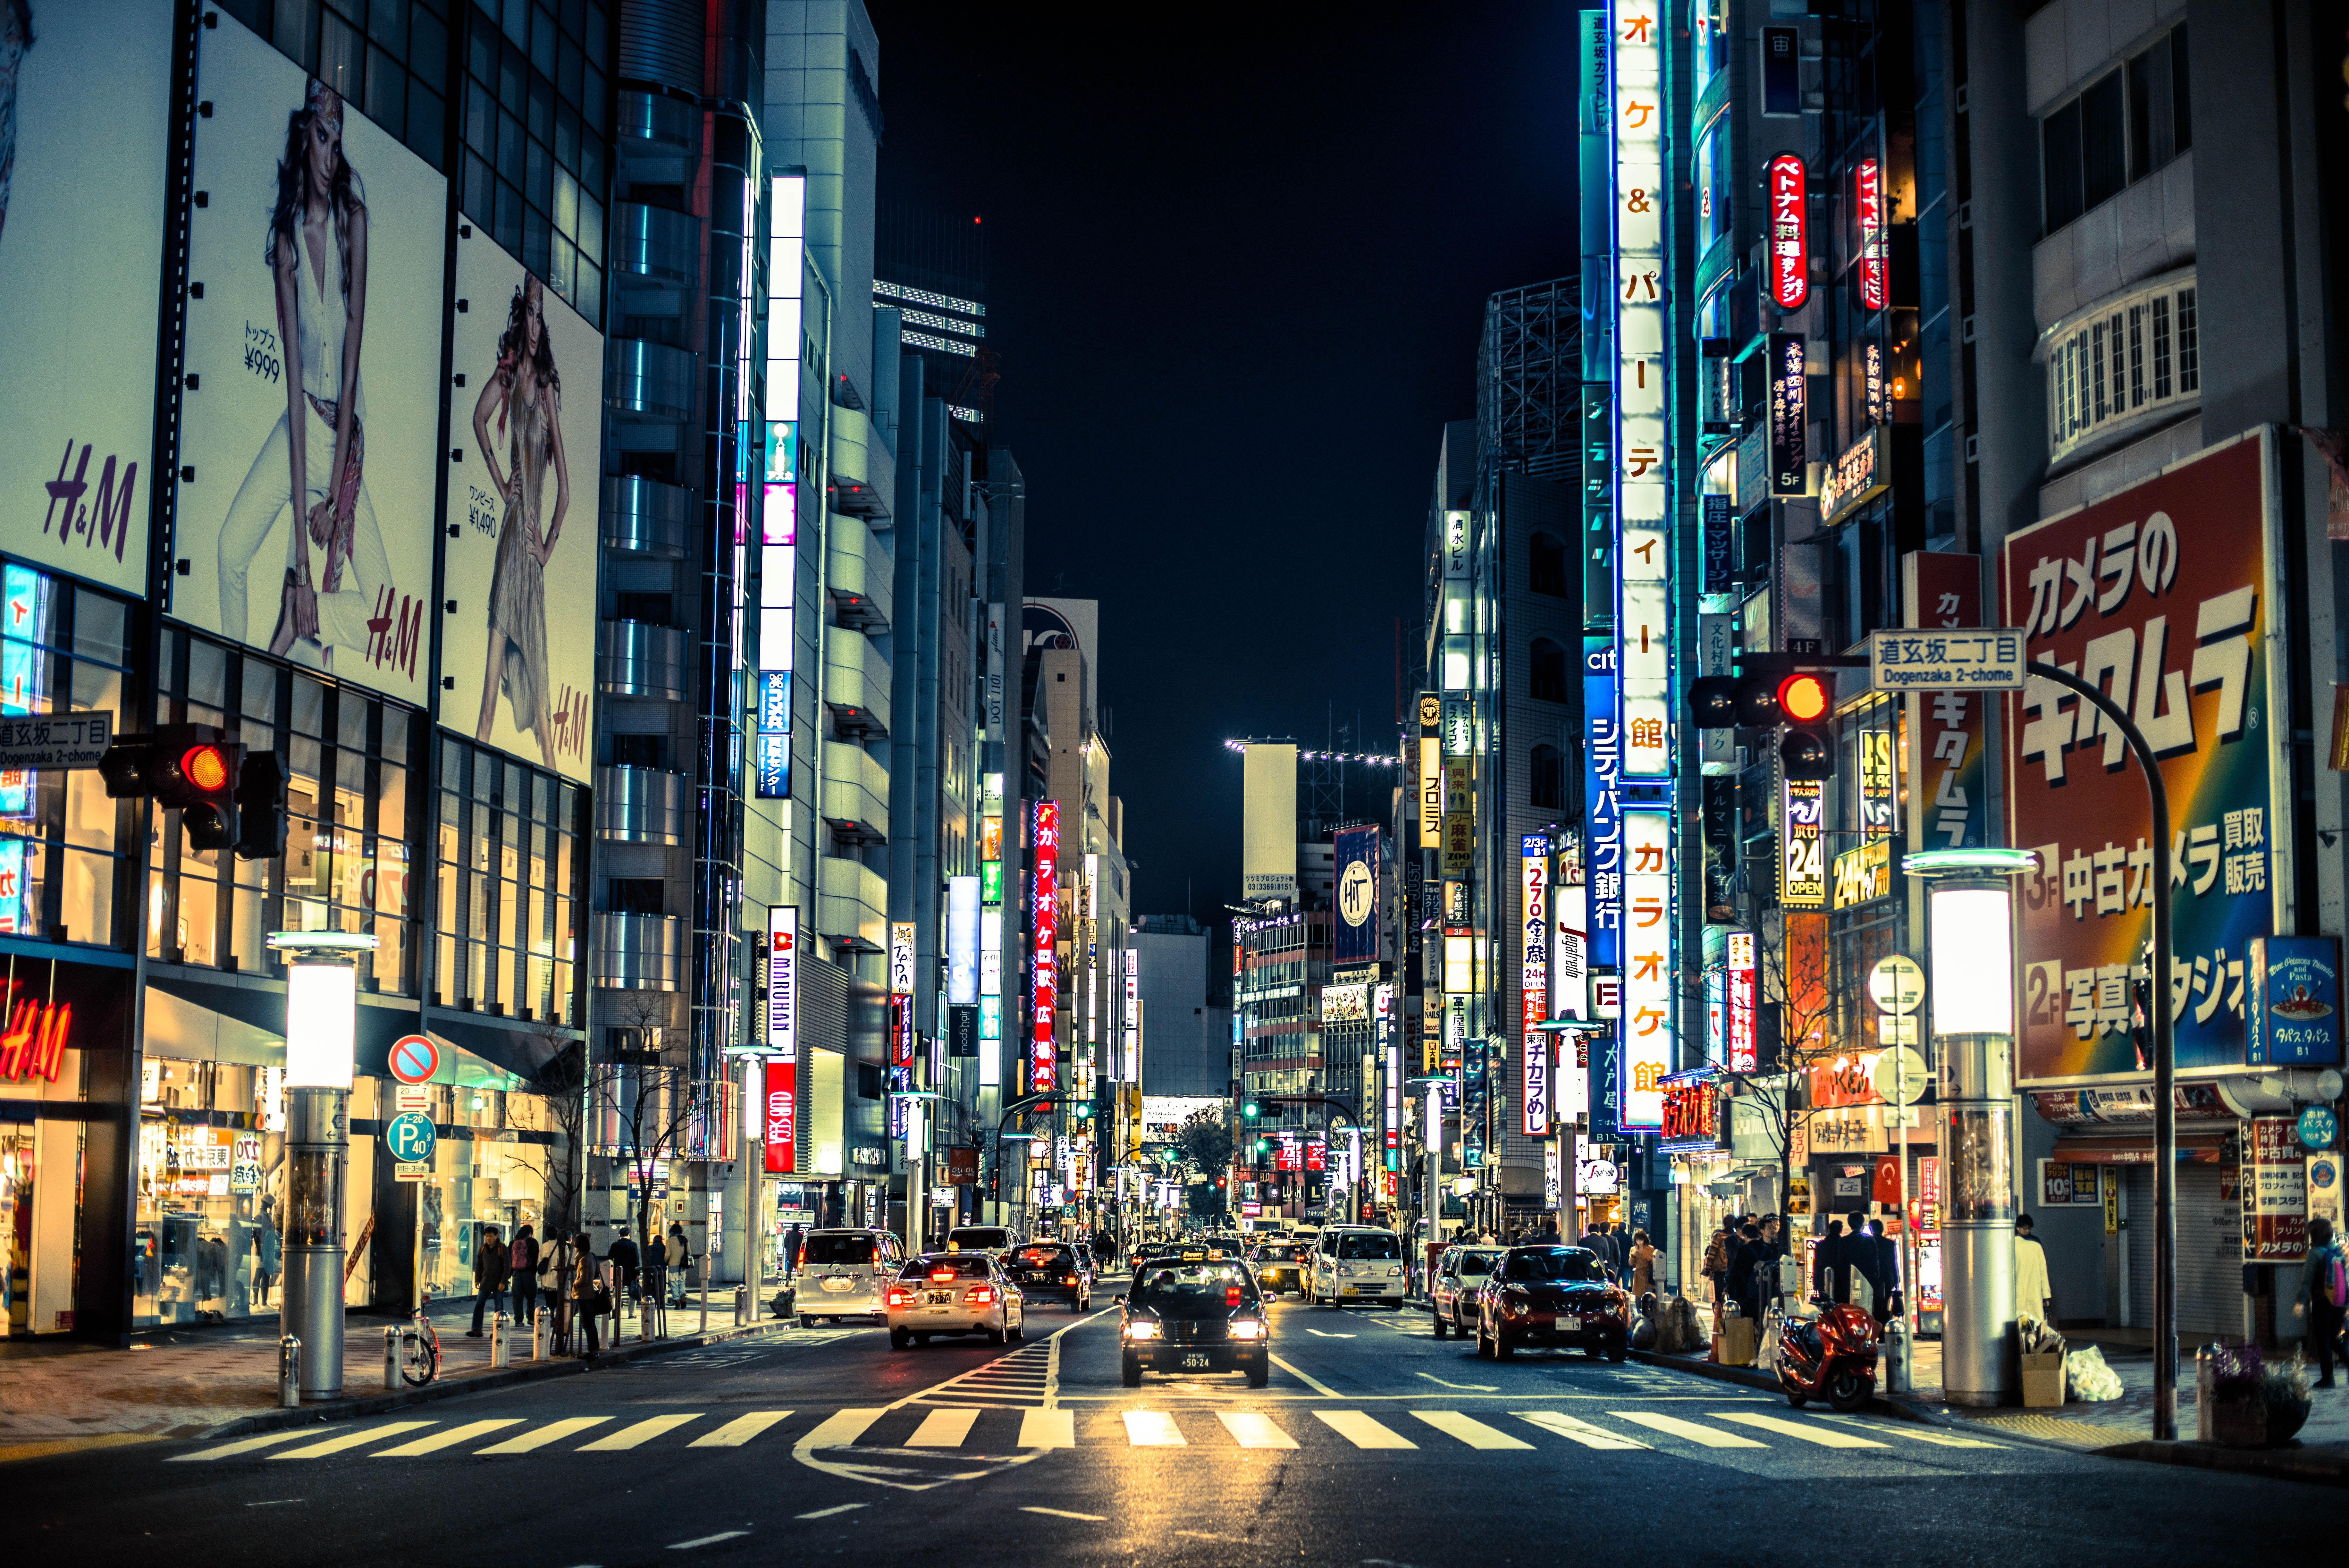 Japan 4k Wallpapers Top Free Japan 4k Backgrounds Wallpaperaccess Places In Tokyo Japanese Tourism Japan Travel